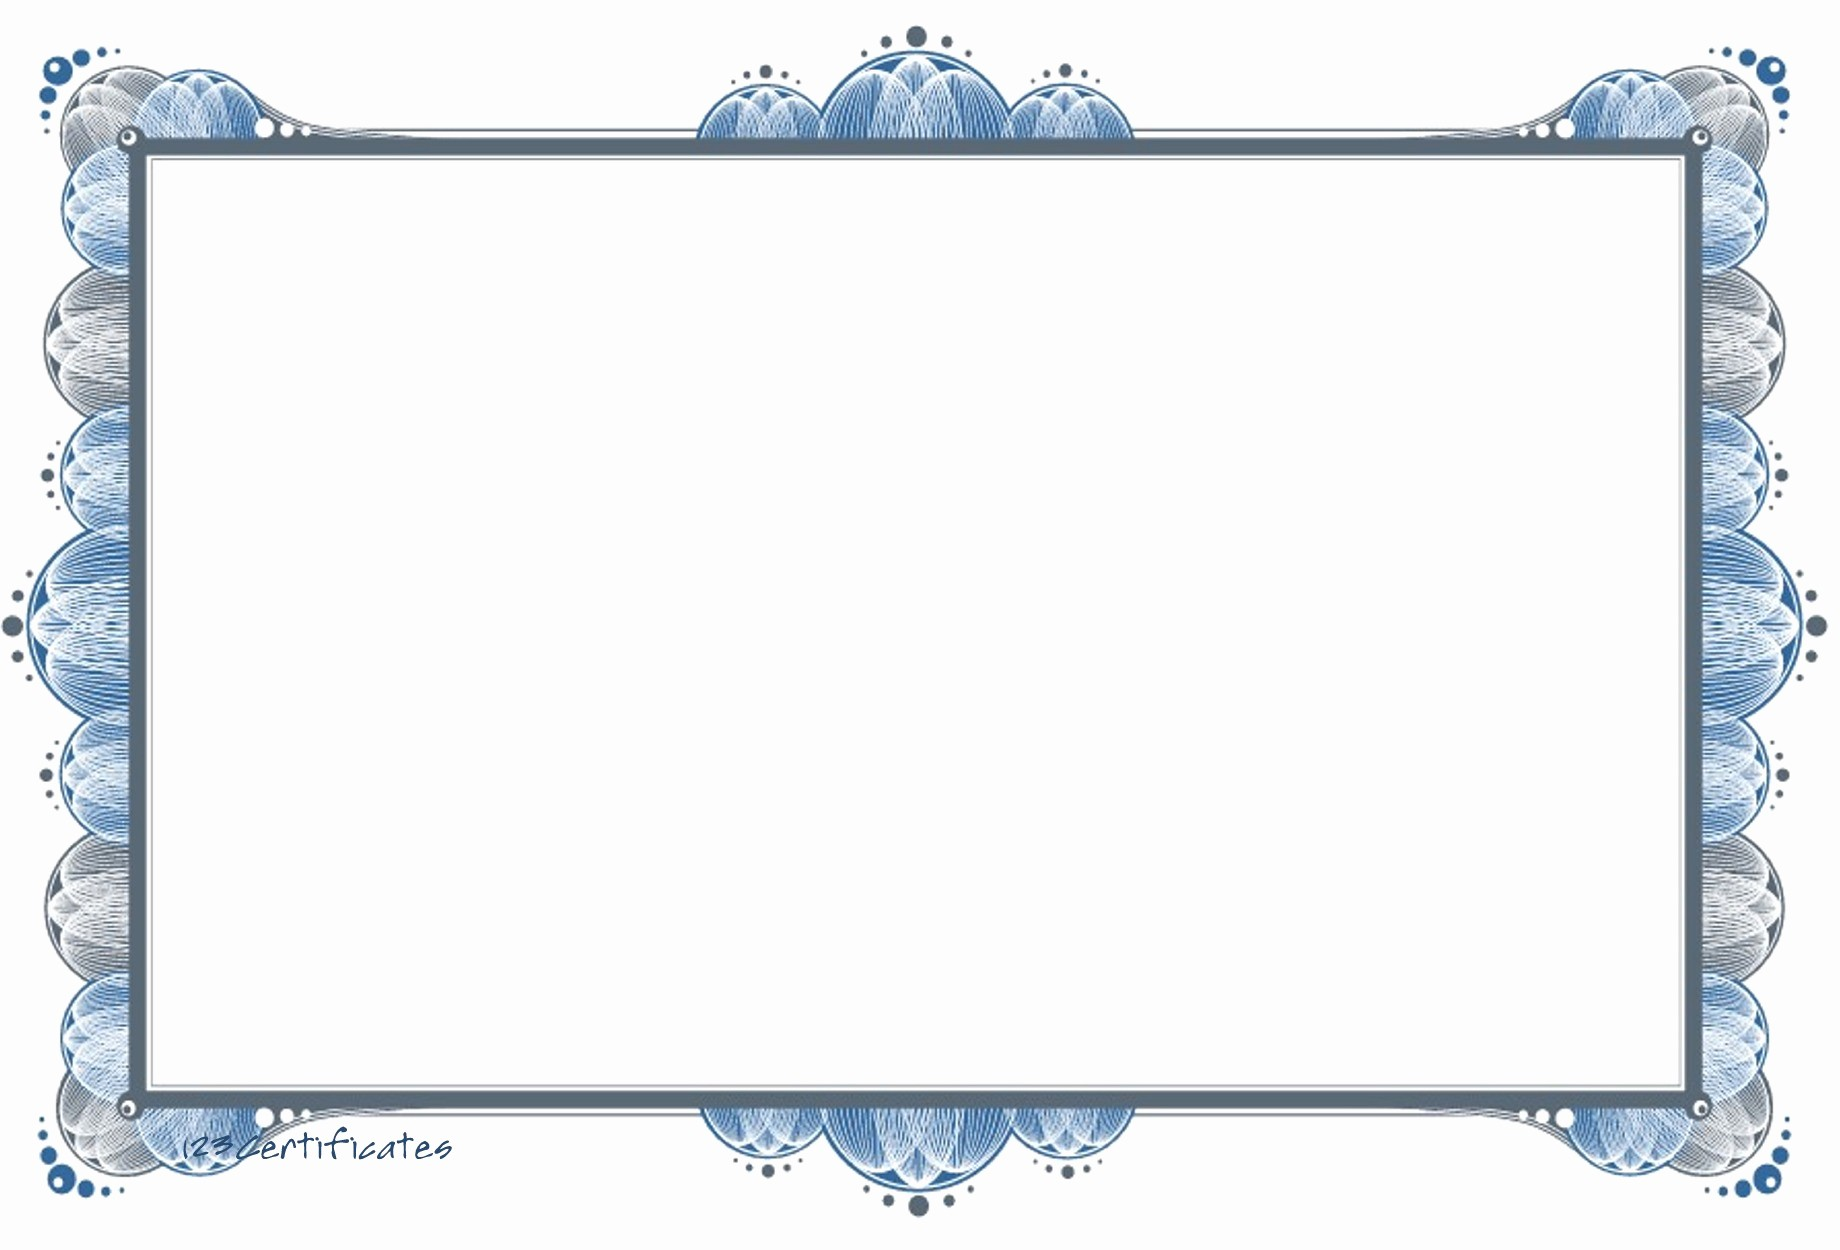 Certificate Design Templates Free Download Awesome Free Certificate Borders to